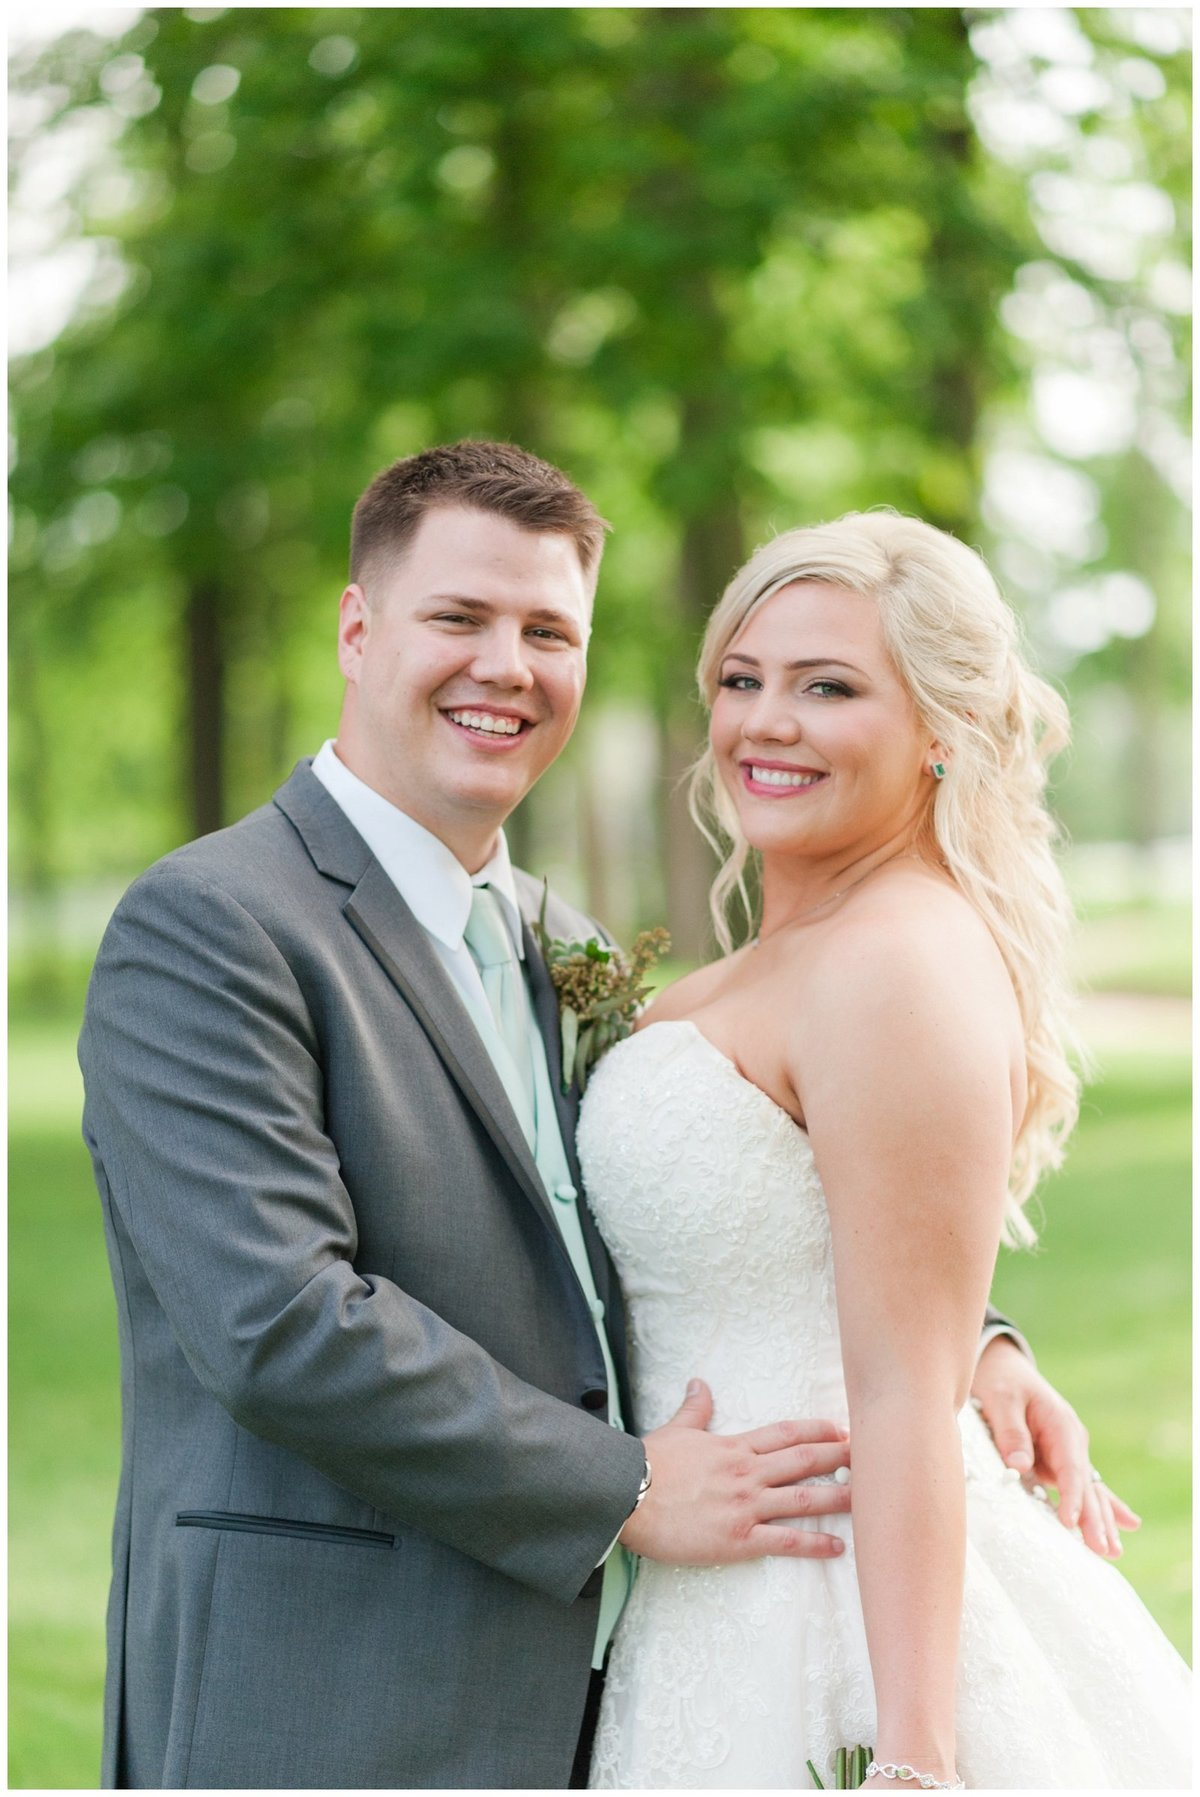 Heritage golf and country club wedding hilliard ohio wedding photos_0053